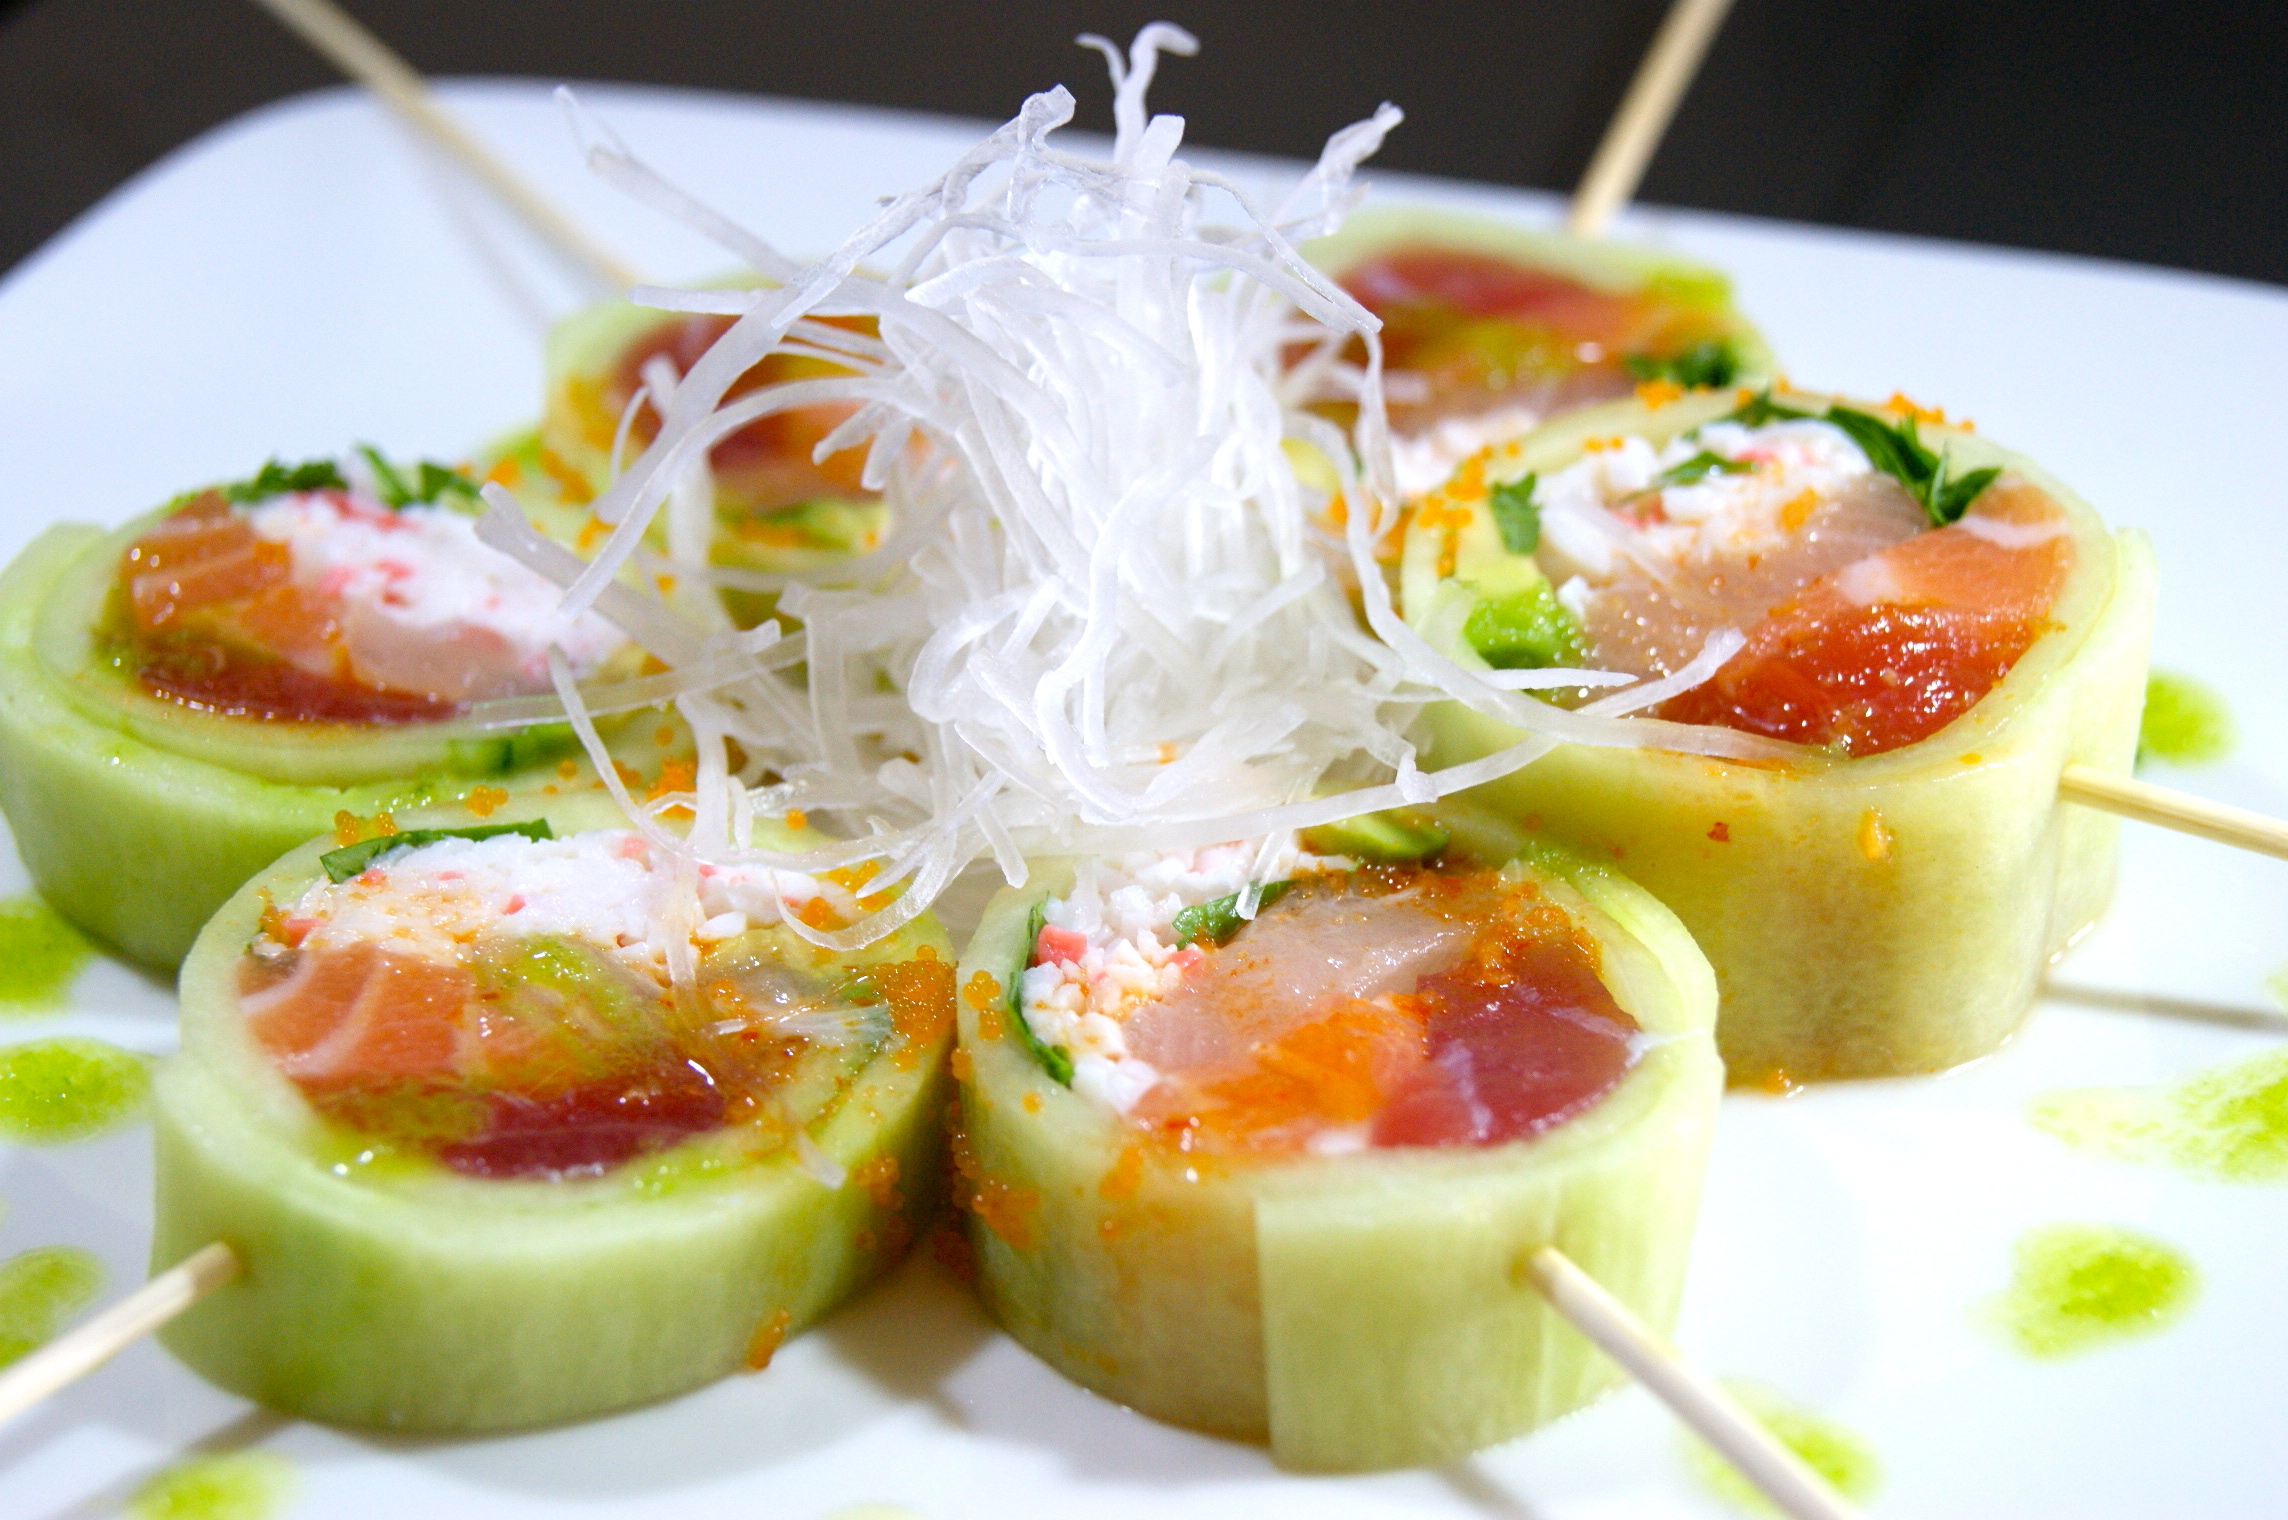 Cucumber Salad Roll (4 Pieces)